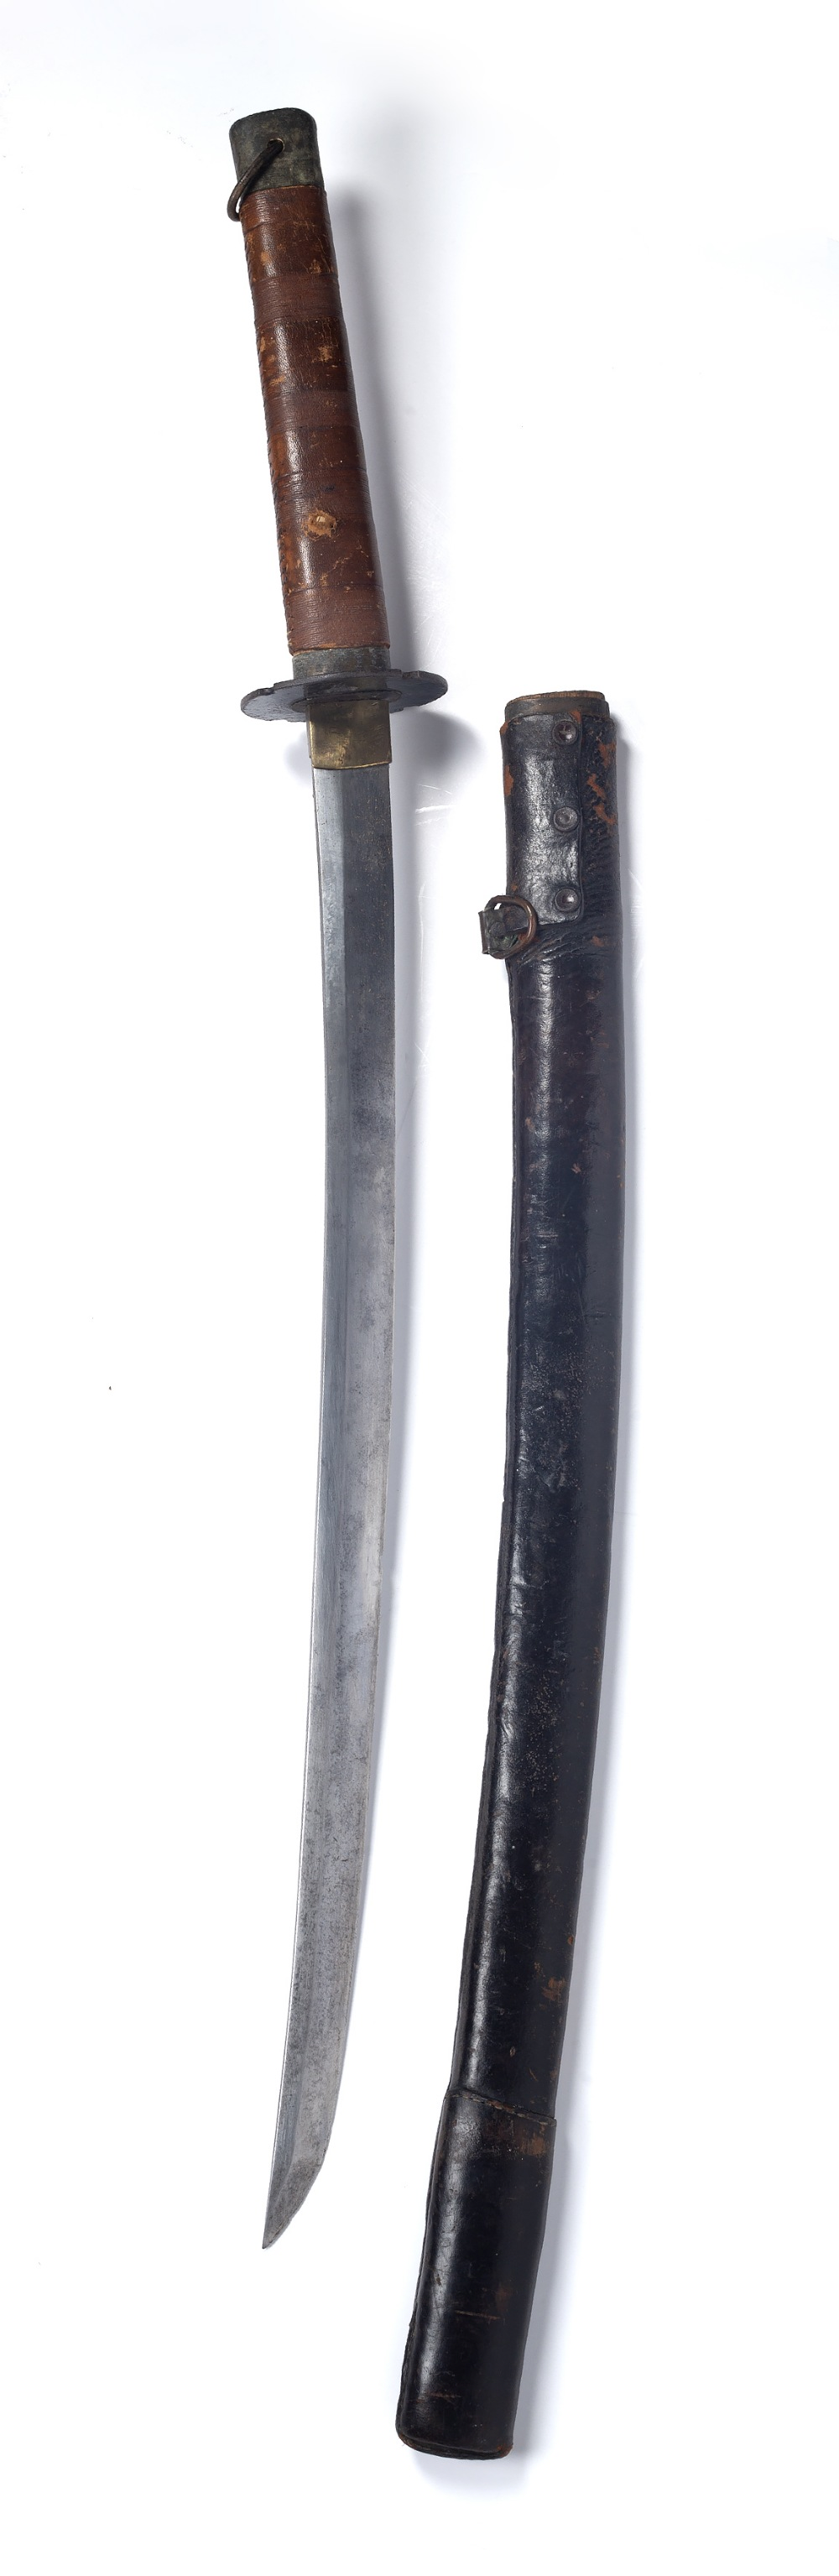 Katana sword Japanese, late WWII period with a plain tsuba and leather scabbard 98cm across